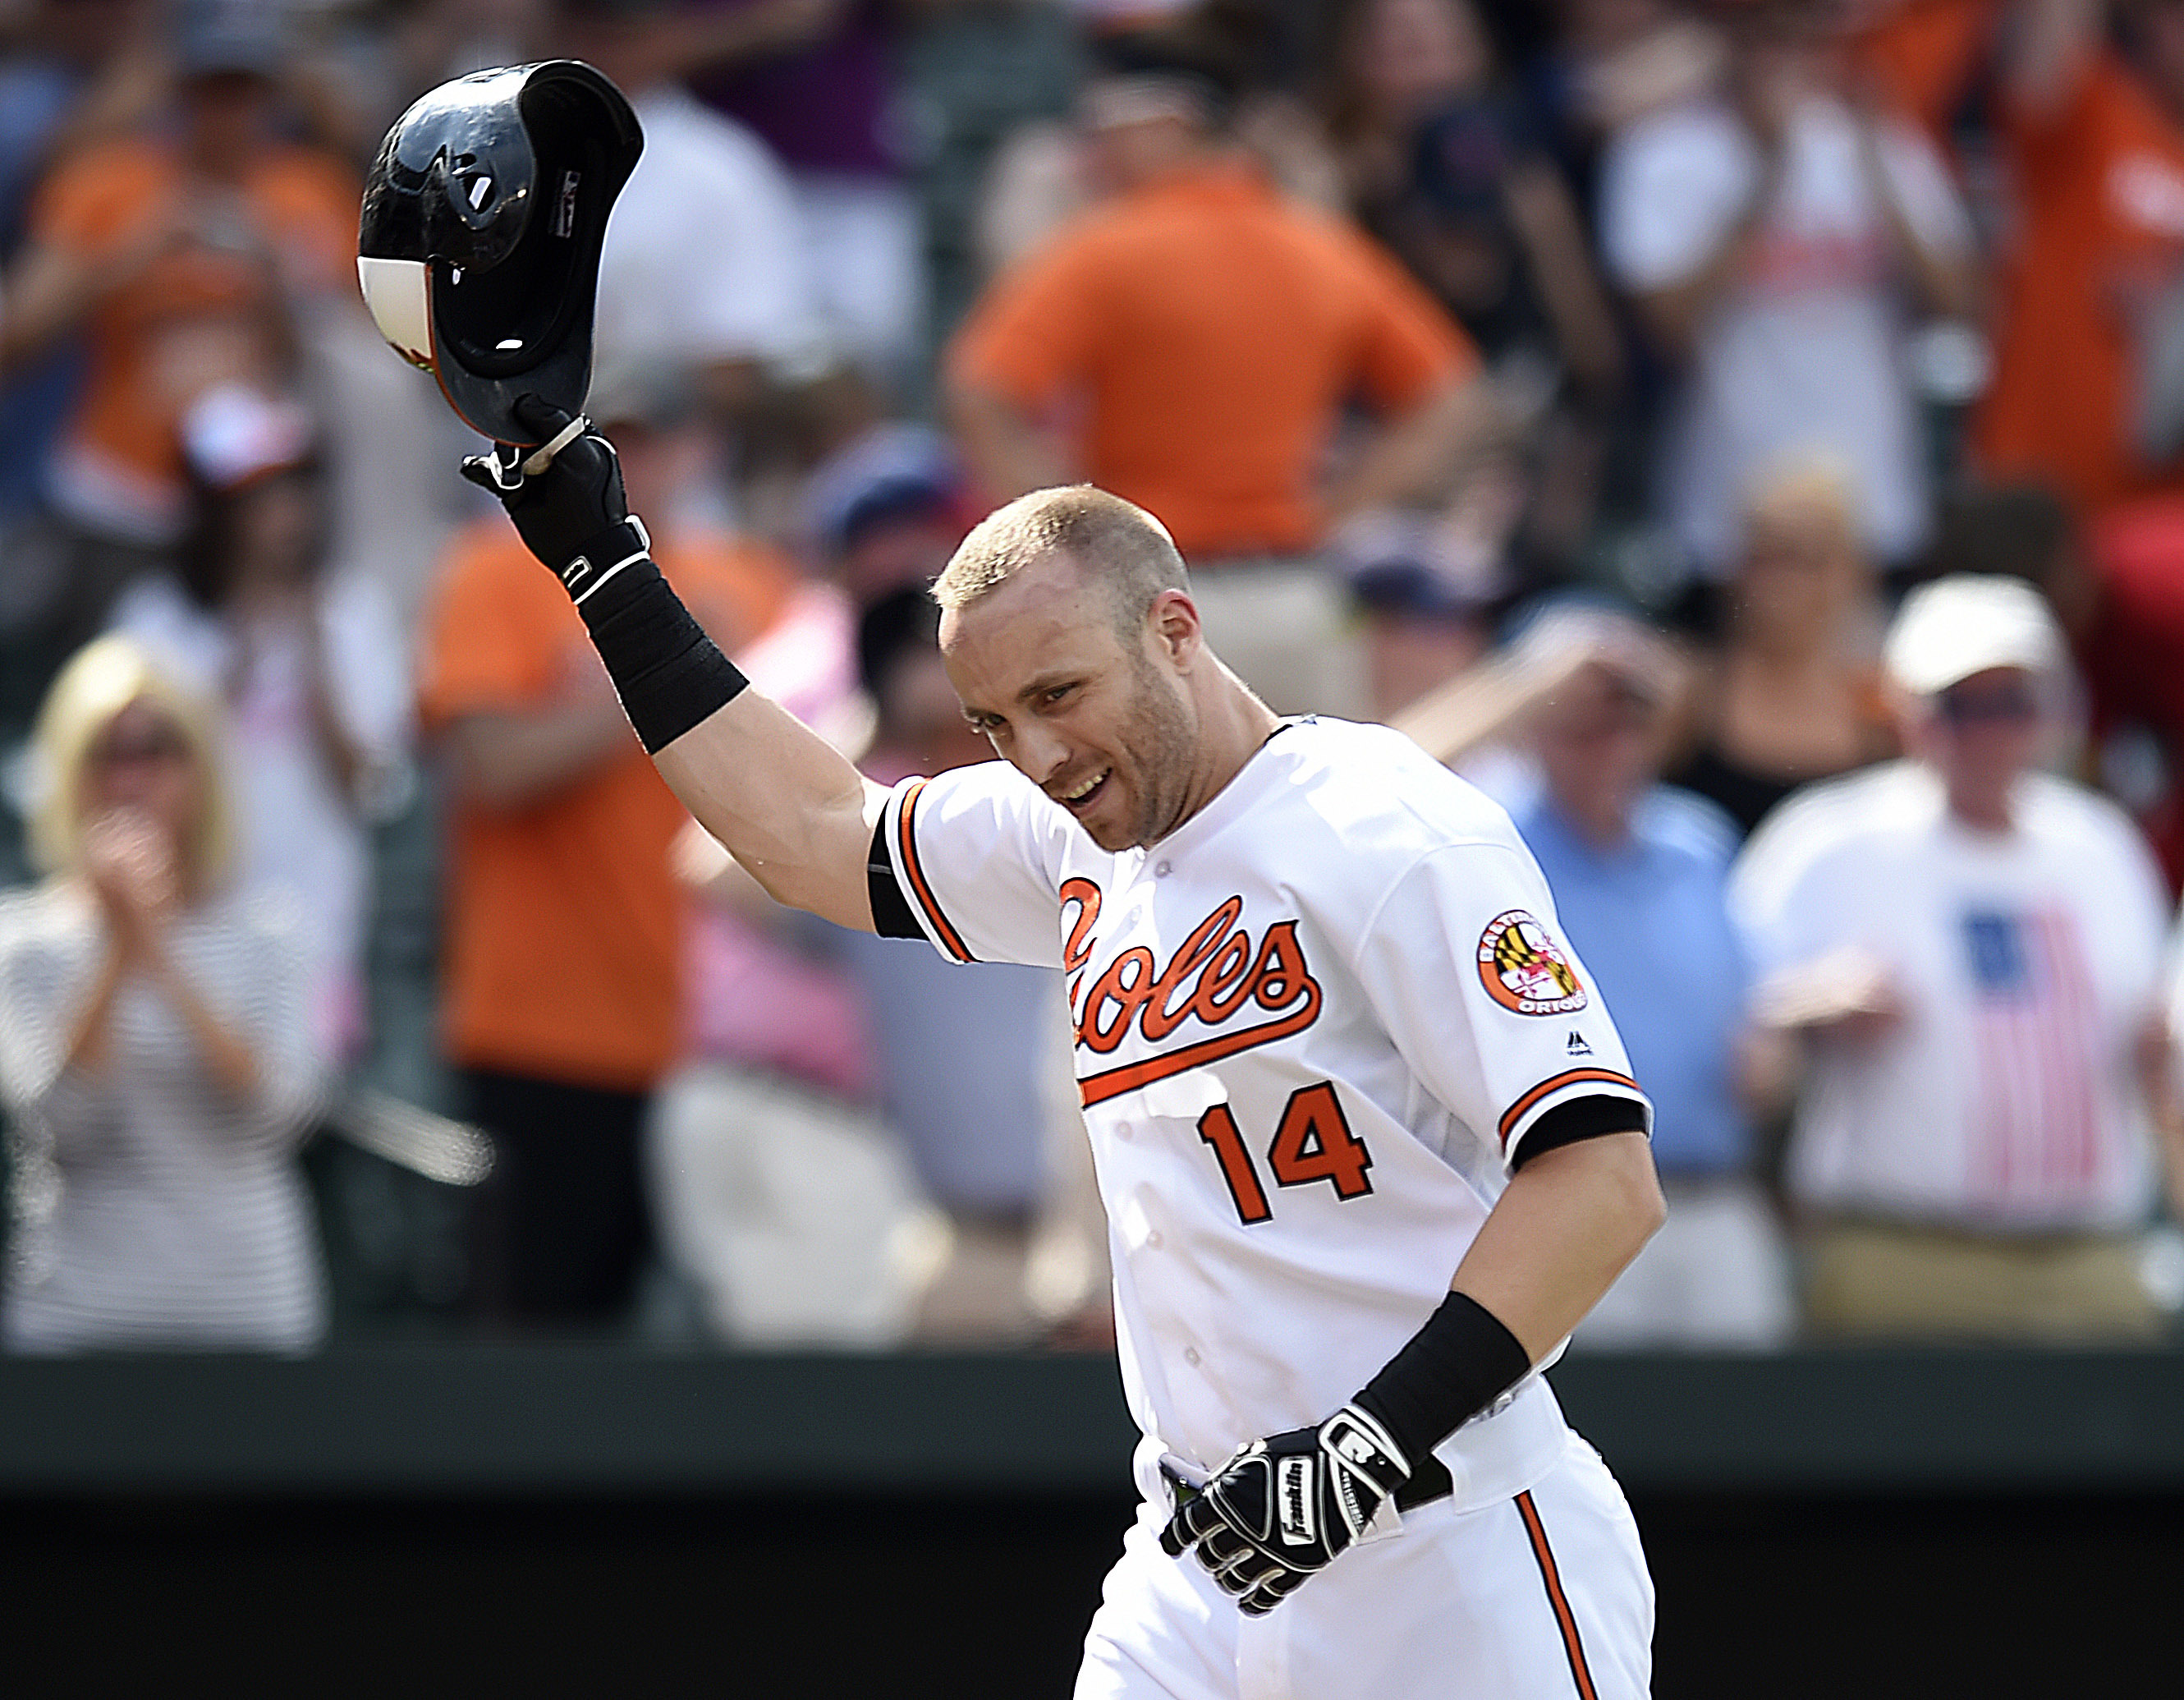 Baltimore Orioles' Nolan Reimold tips his helmet after hitting a walk-off two-run home run against the Cleveland Indians during a baseball game Sunday, July 24, 2016 in Baltimore. The Orioles won 5-3. (AP Photo/Gail Burton)